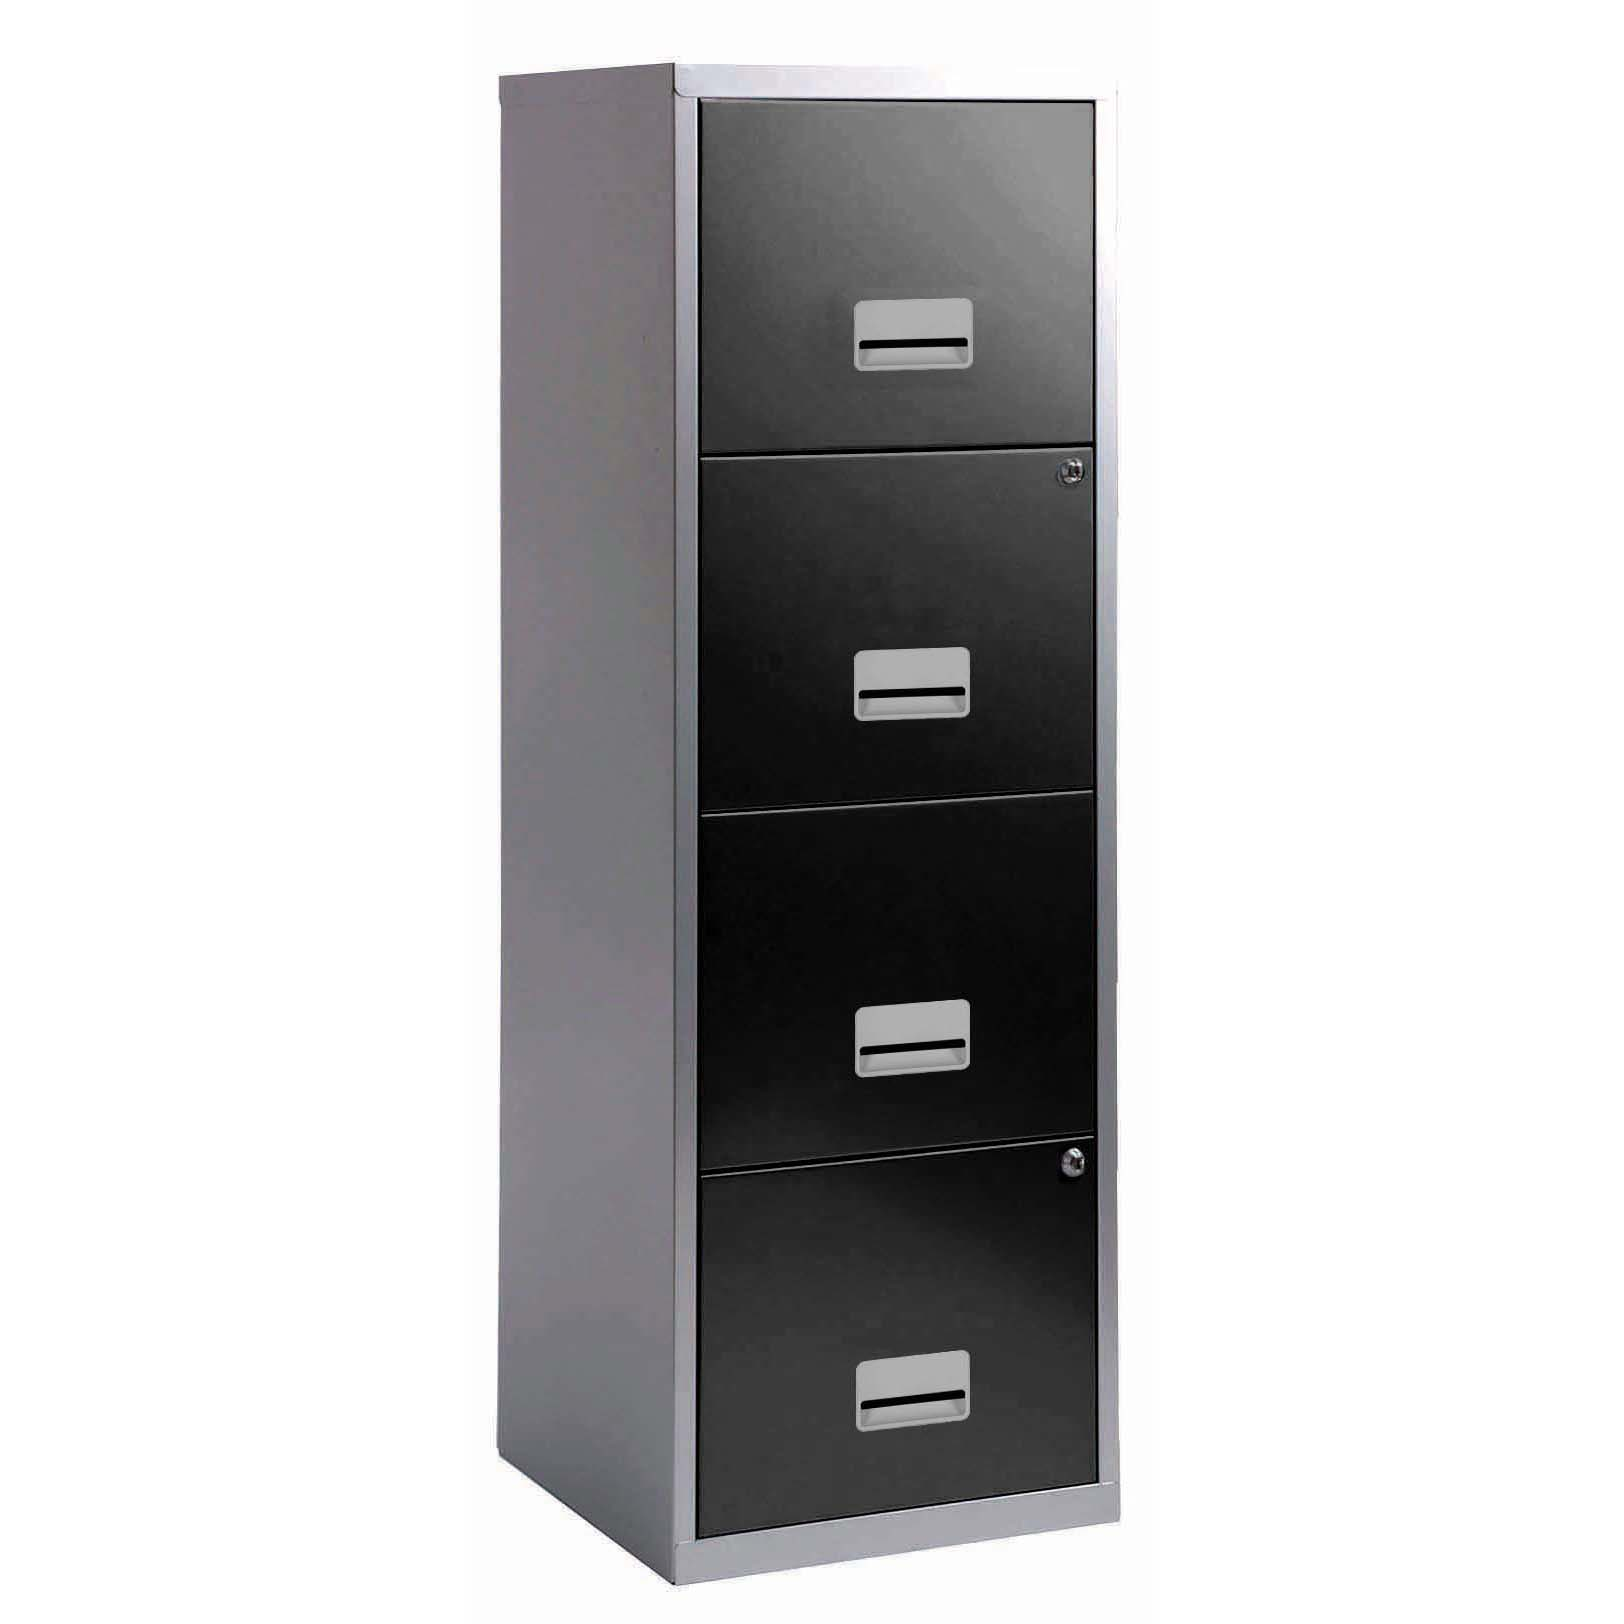 Filing cabinets or accesories Filing Cabinet Steel 4 Drawer A4 400x400x1250mm Ref 95809